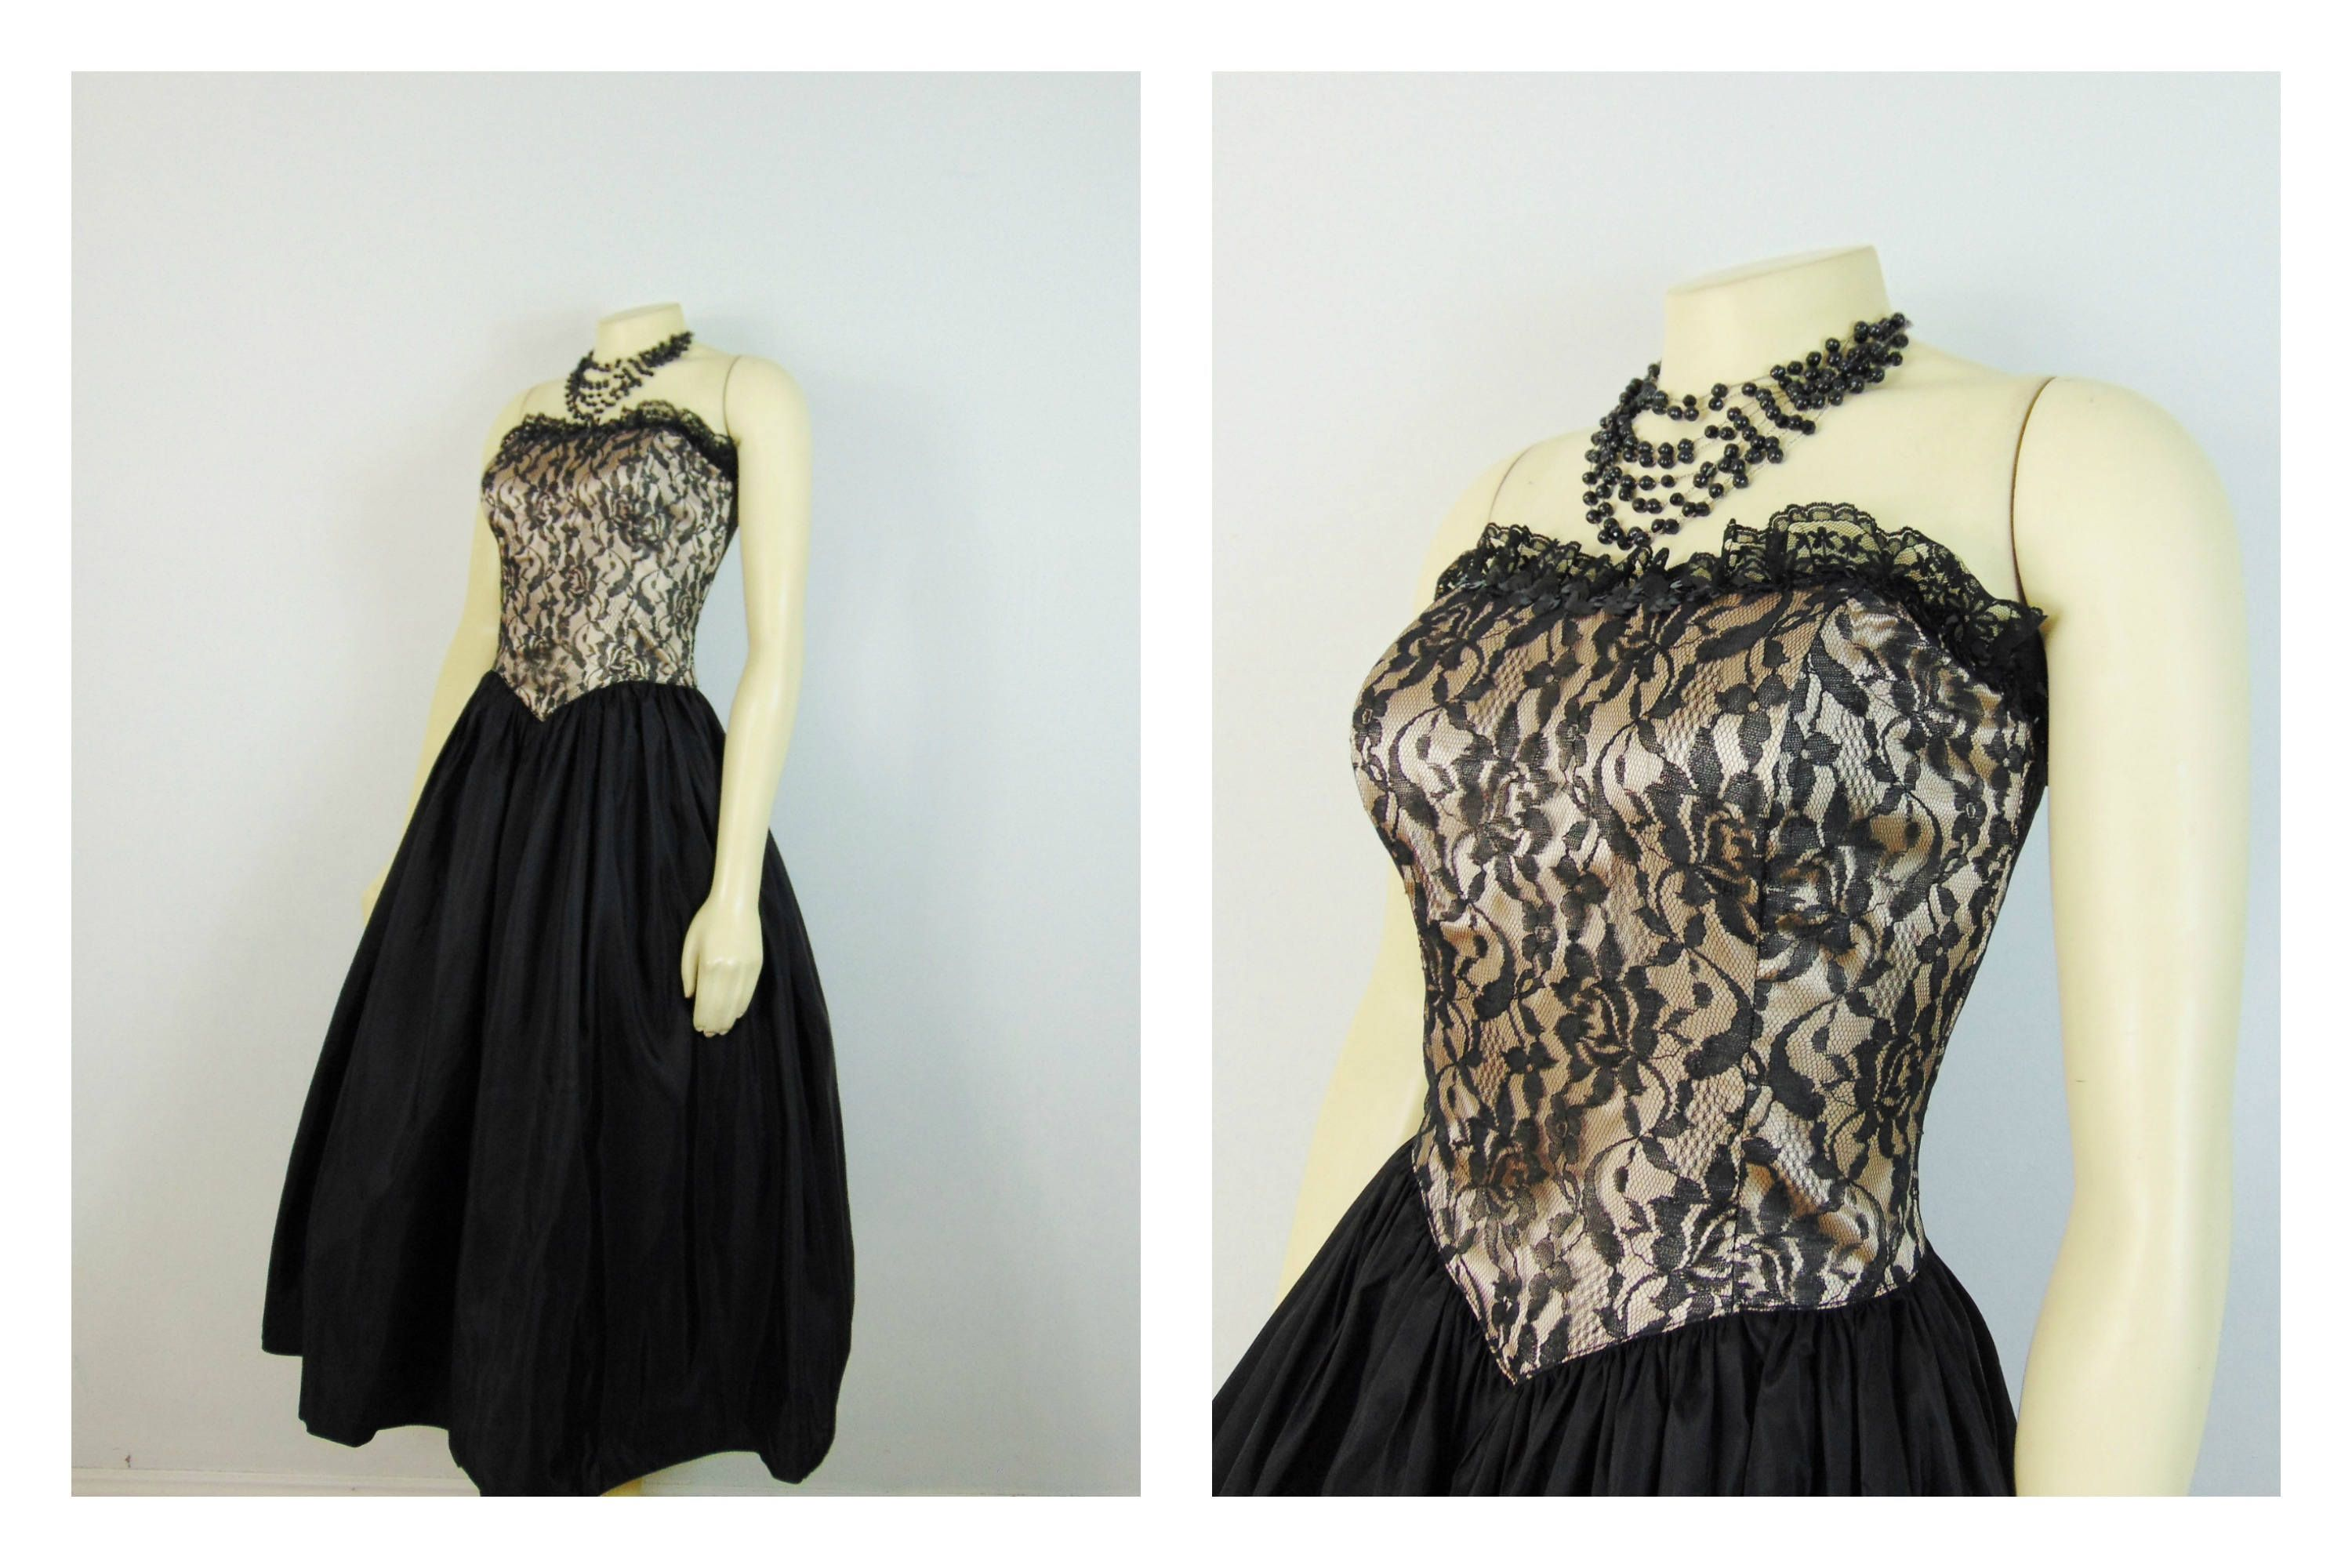 Vintage 80s prom dress jessica mcclintock for gunne sax nude vintage 80s prom dress jessica mcclintock for gunne sax nude illusion black lace beige champagne full ombrellifo Images